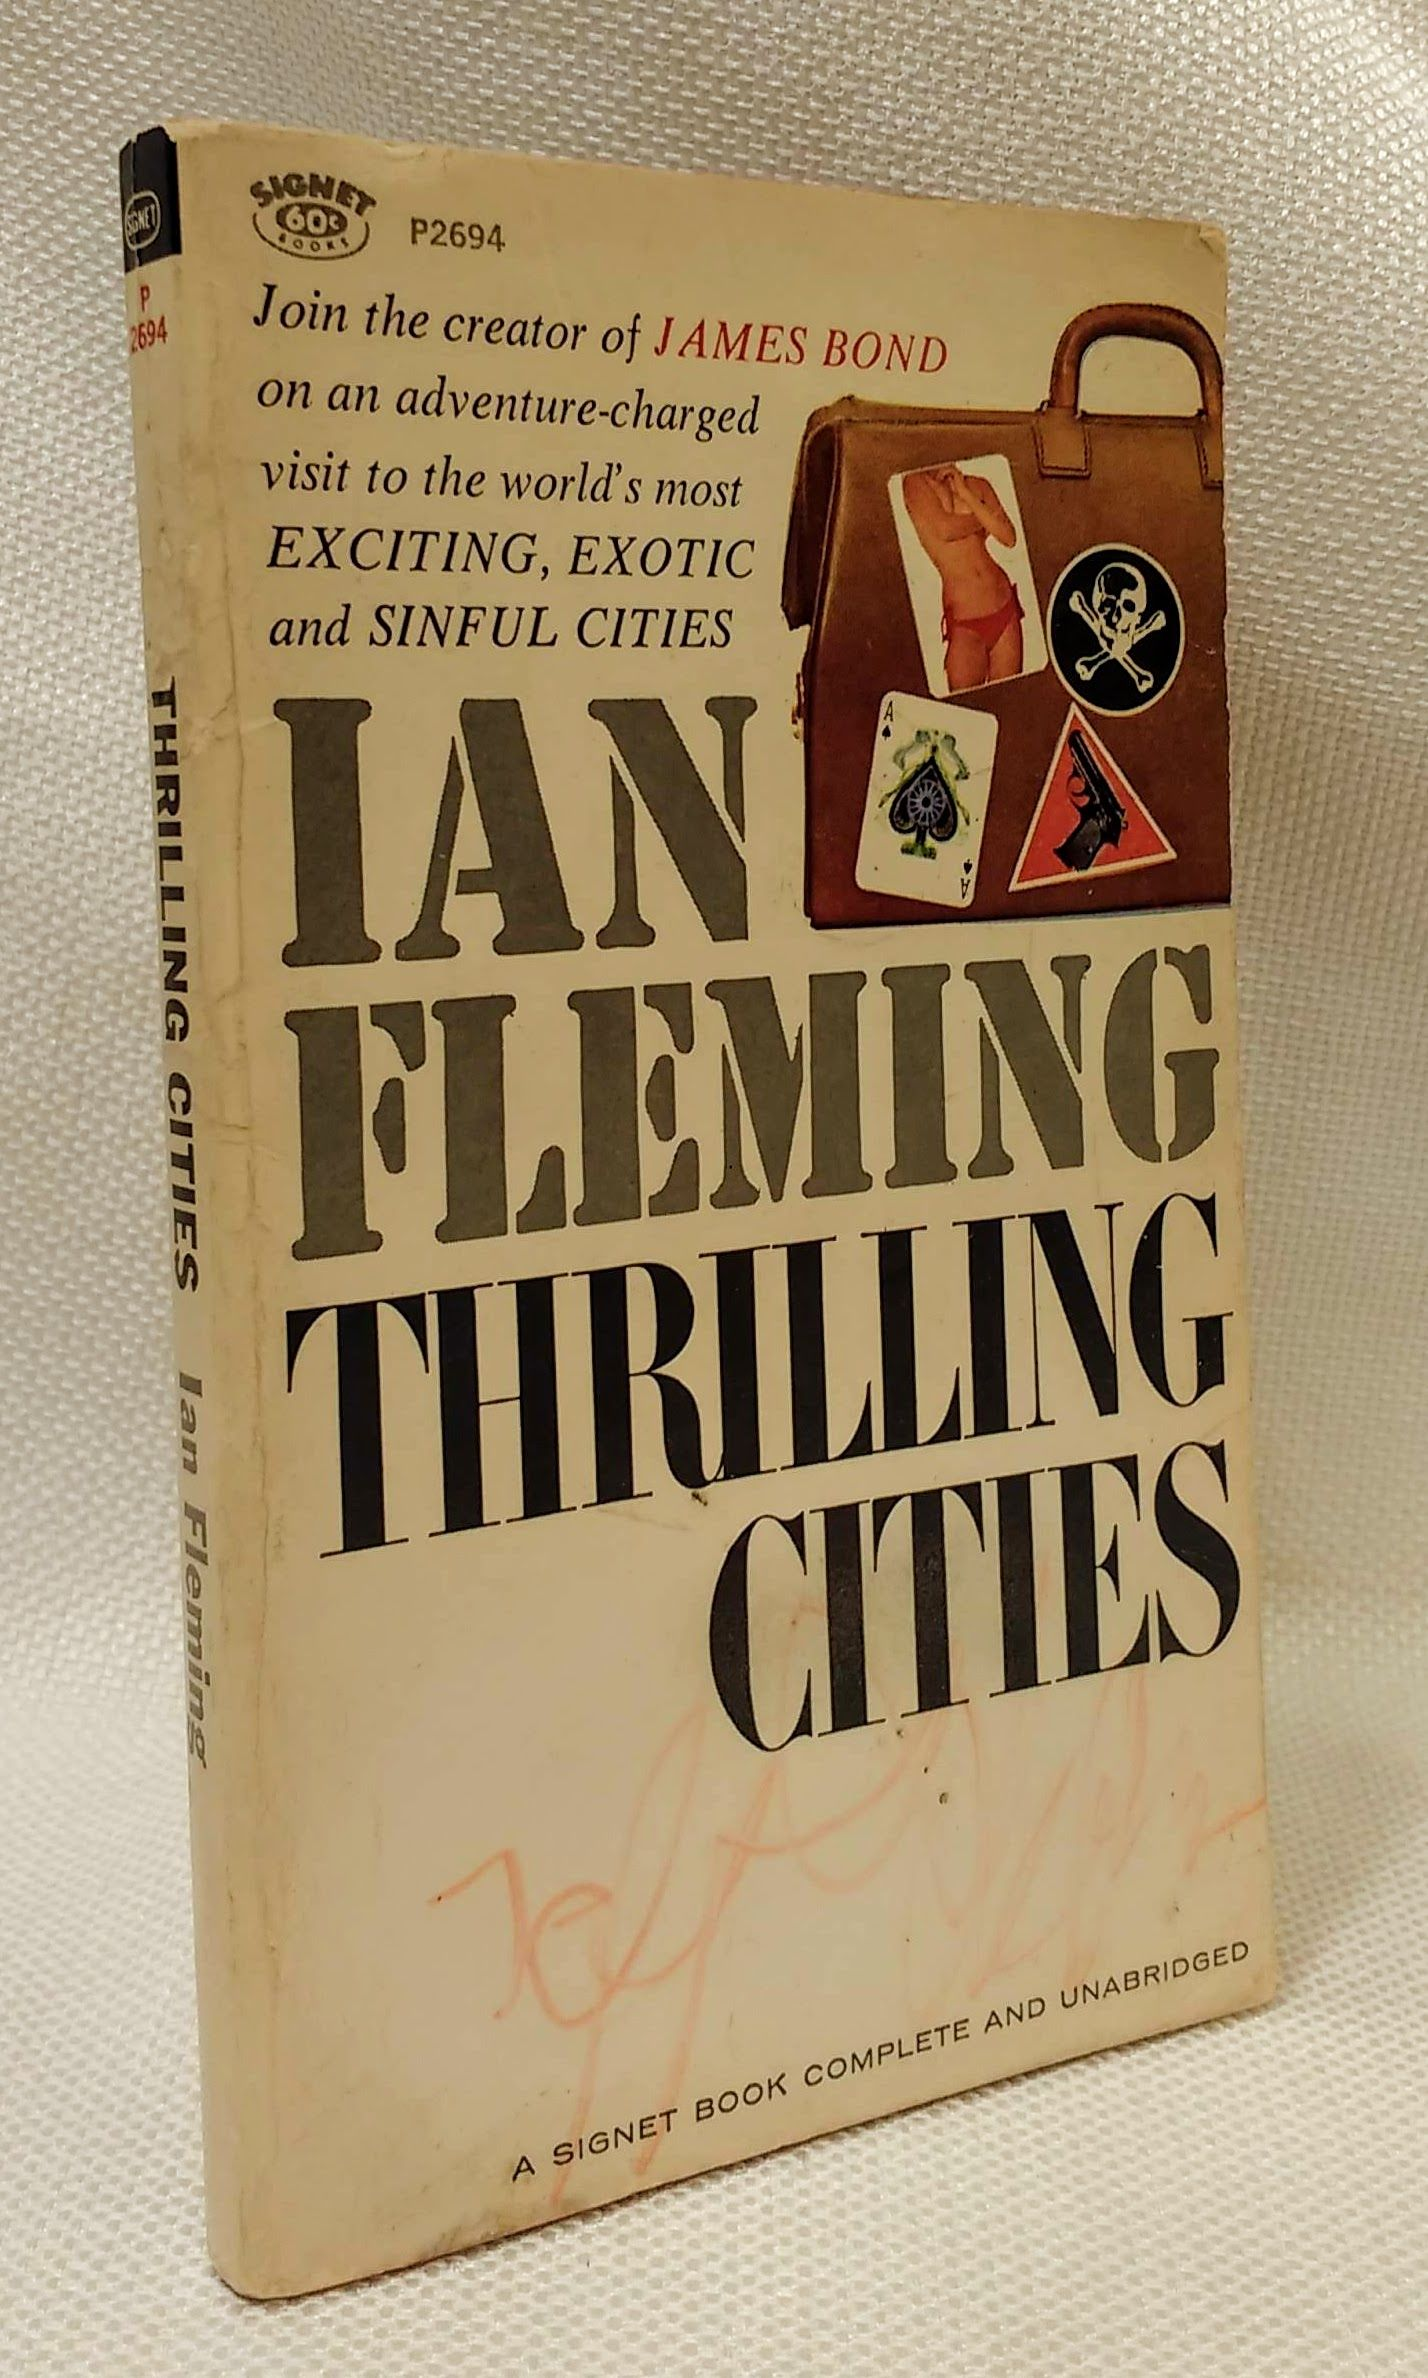 Thrilling Cities, Fleming, Ian